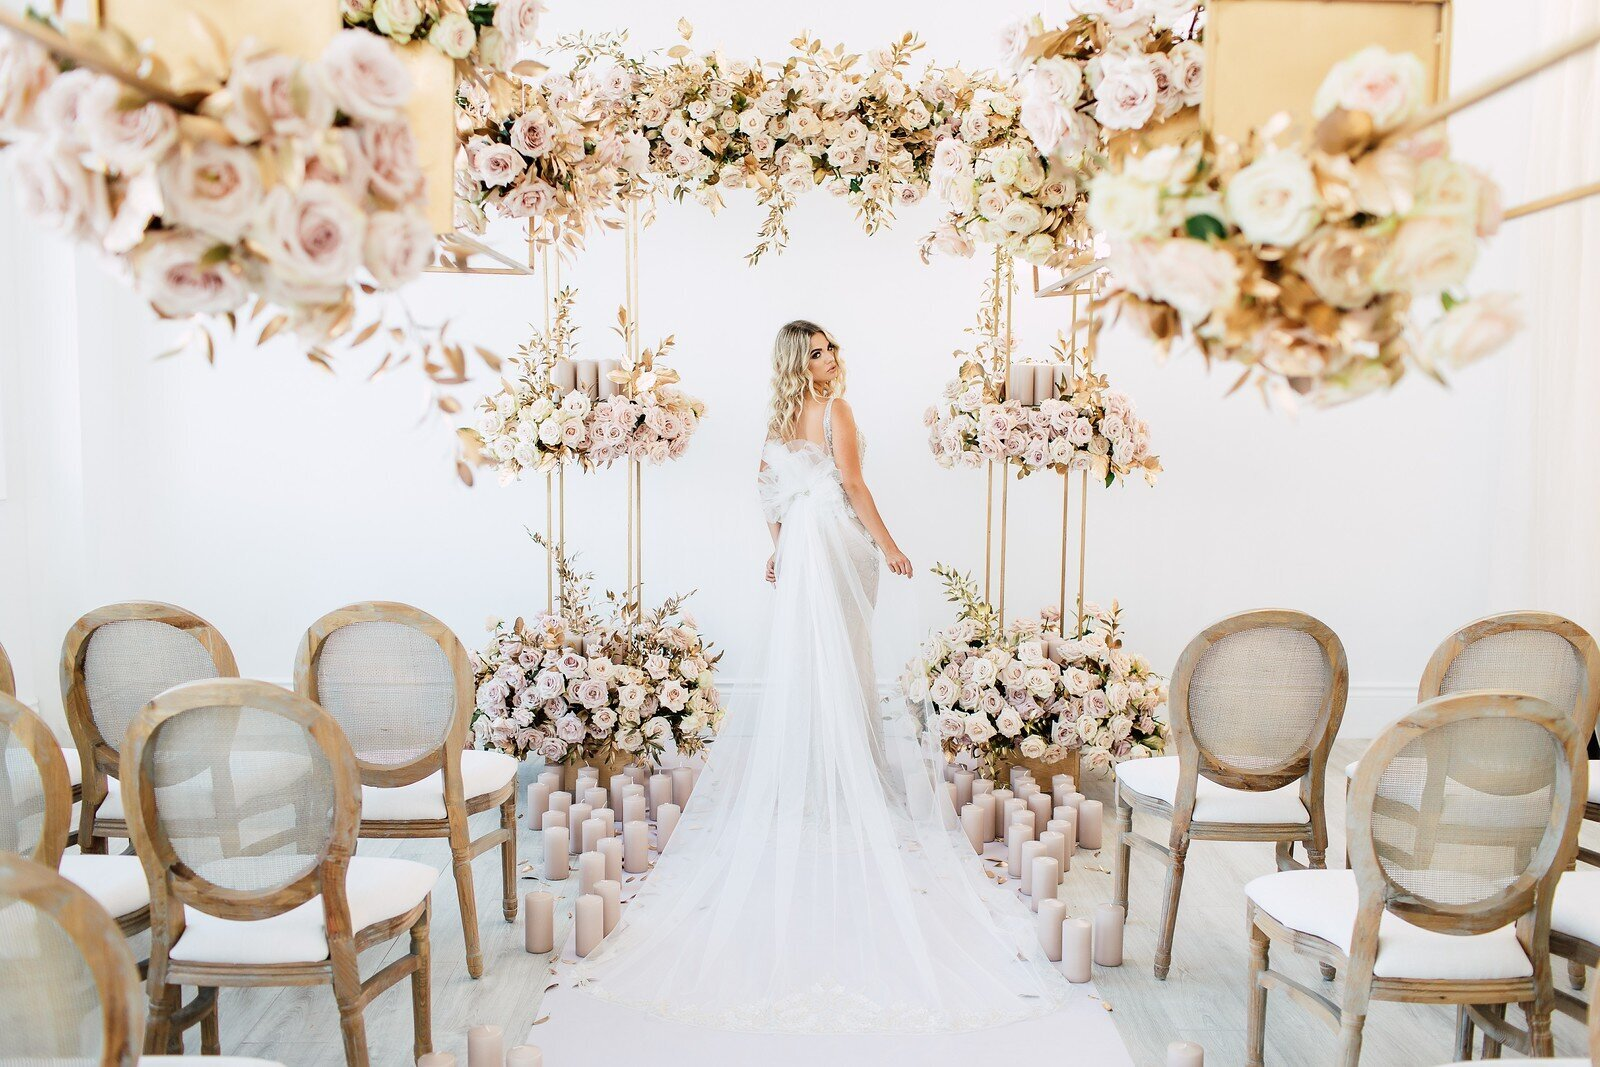 CoralPinkGoldWedding-COCObyCoversCouture-TorontoWeddingFlowers-PT.jpg40